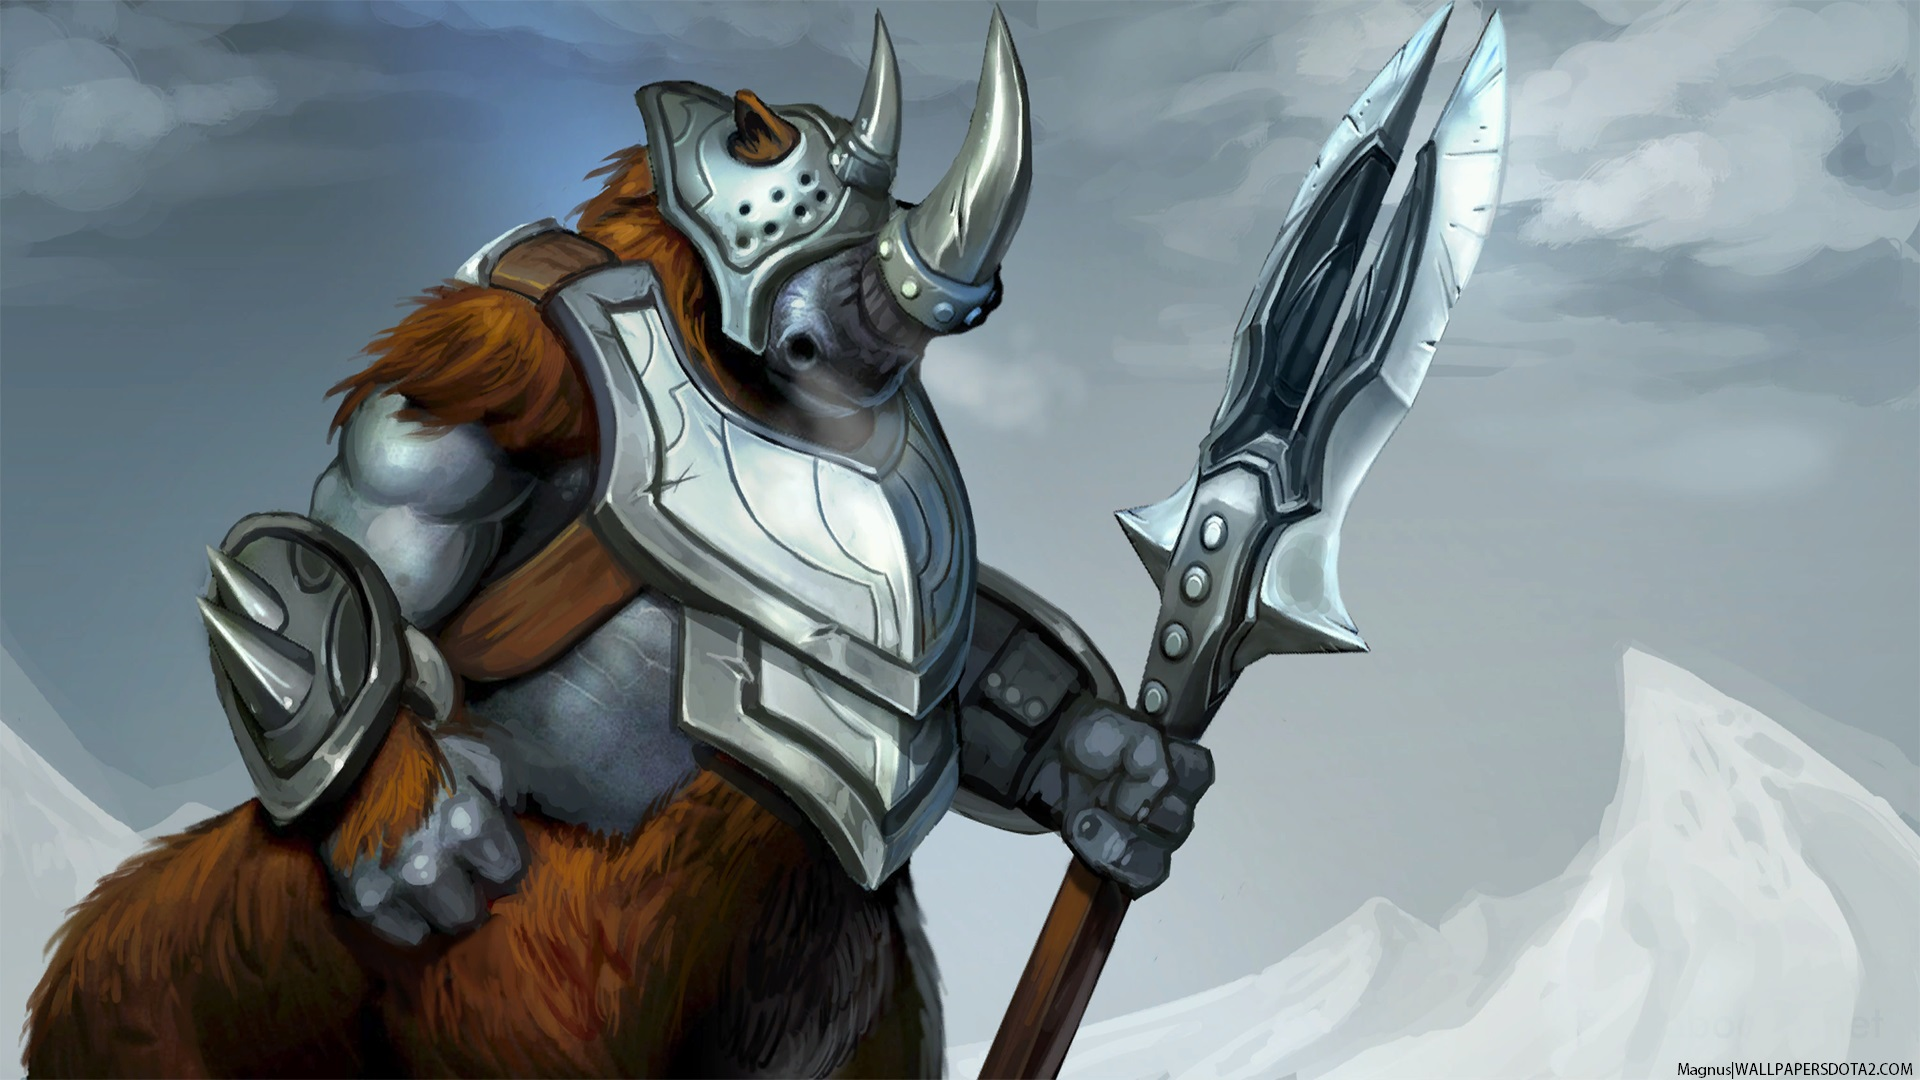 Magnus Defender of Matriarch  free pc wallpaper download Dota 2